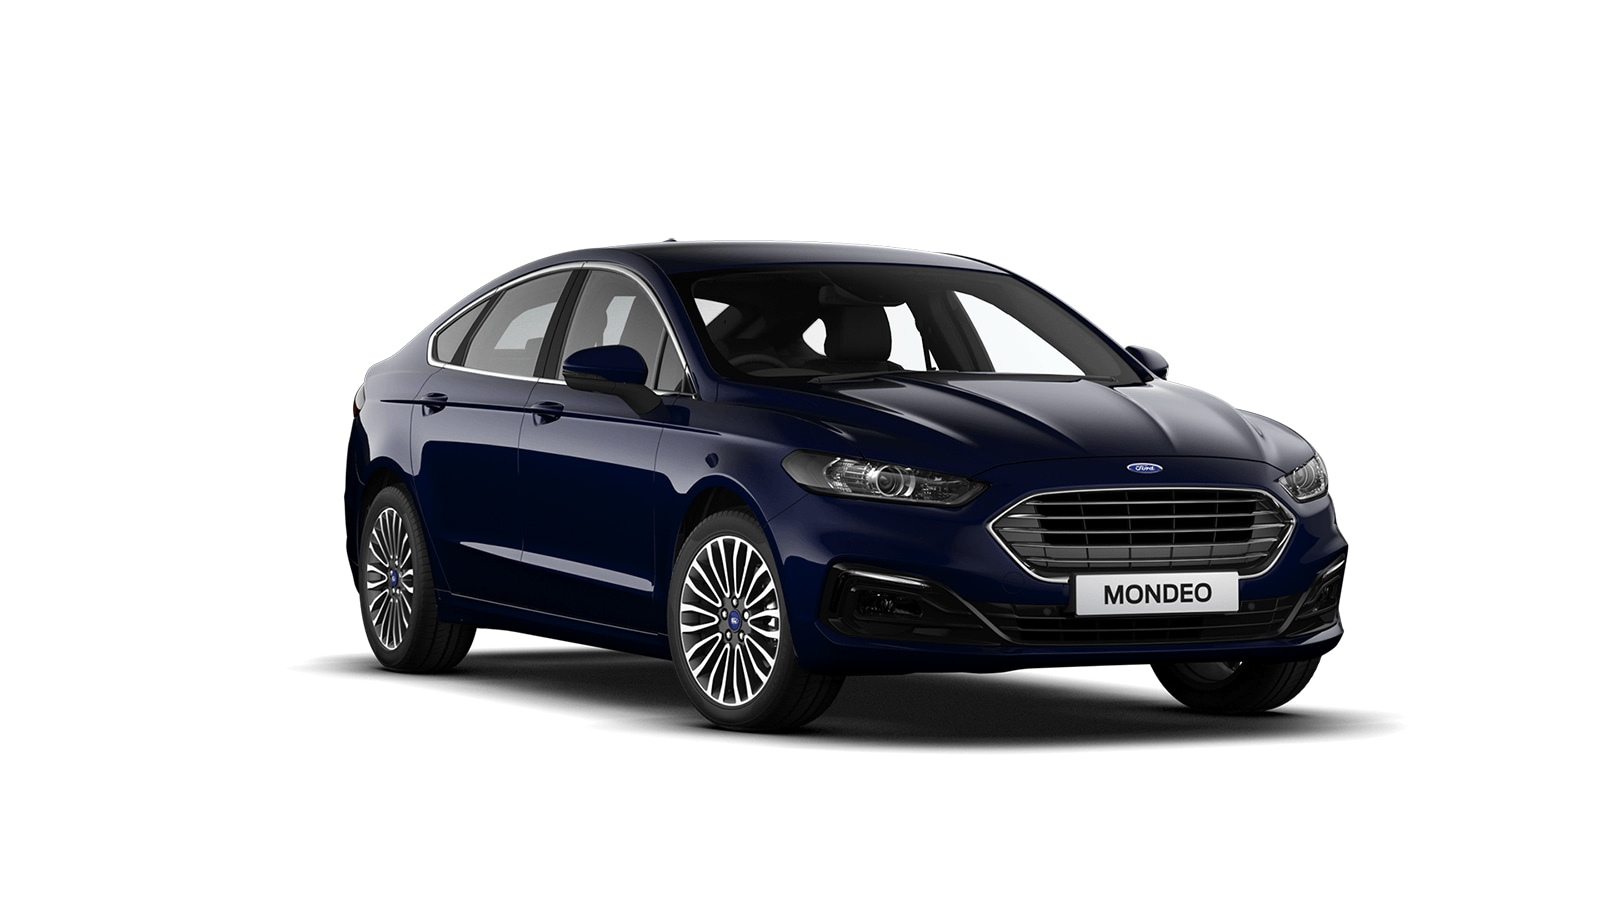 Ford Mondeo Titanium Edition 2.0L EcoBlue 150PS at RGR Garages